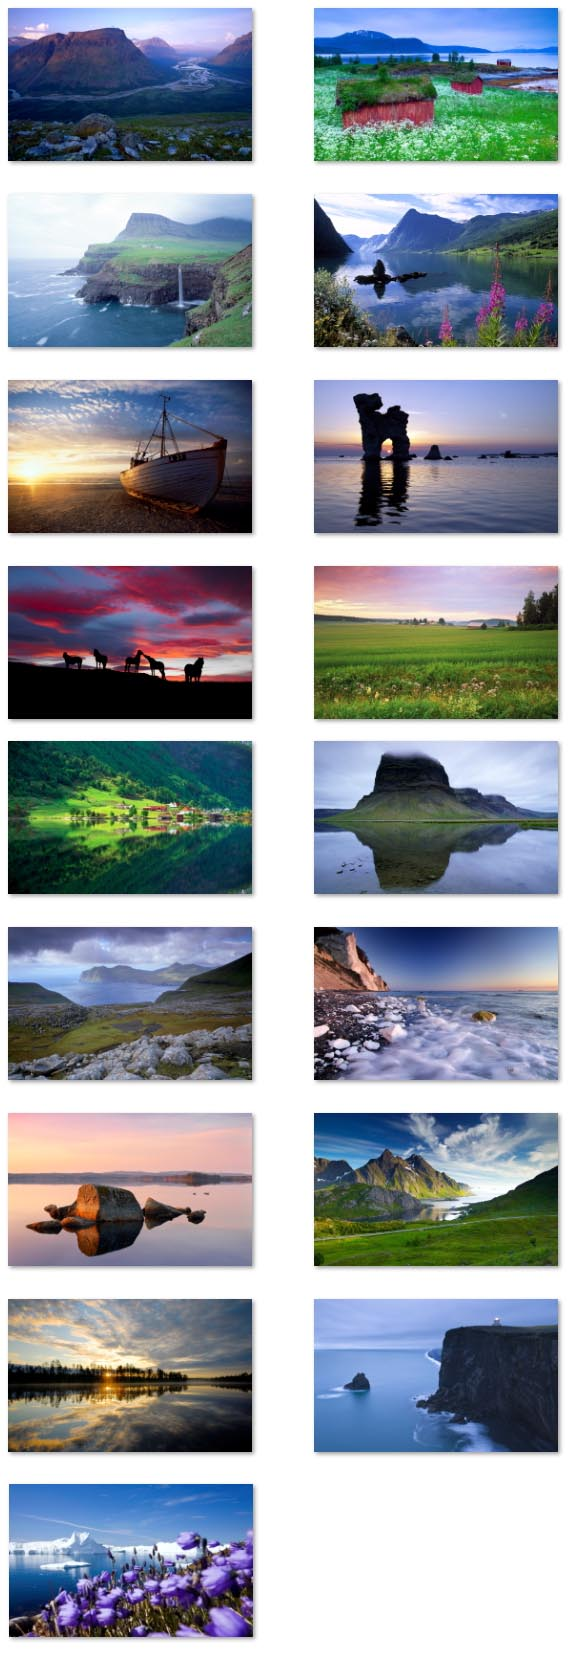 Nordic wallpapers sample image 570_wide